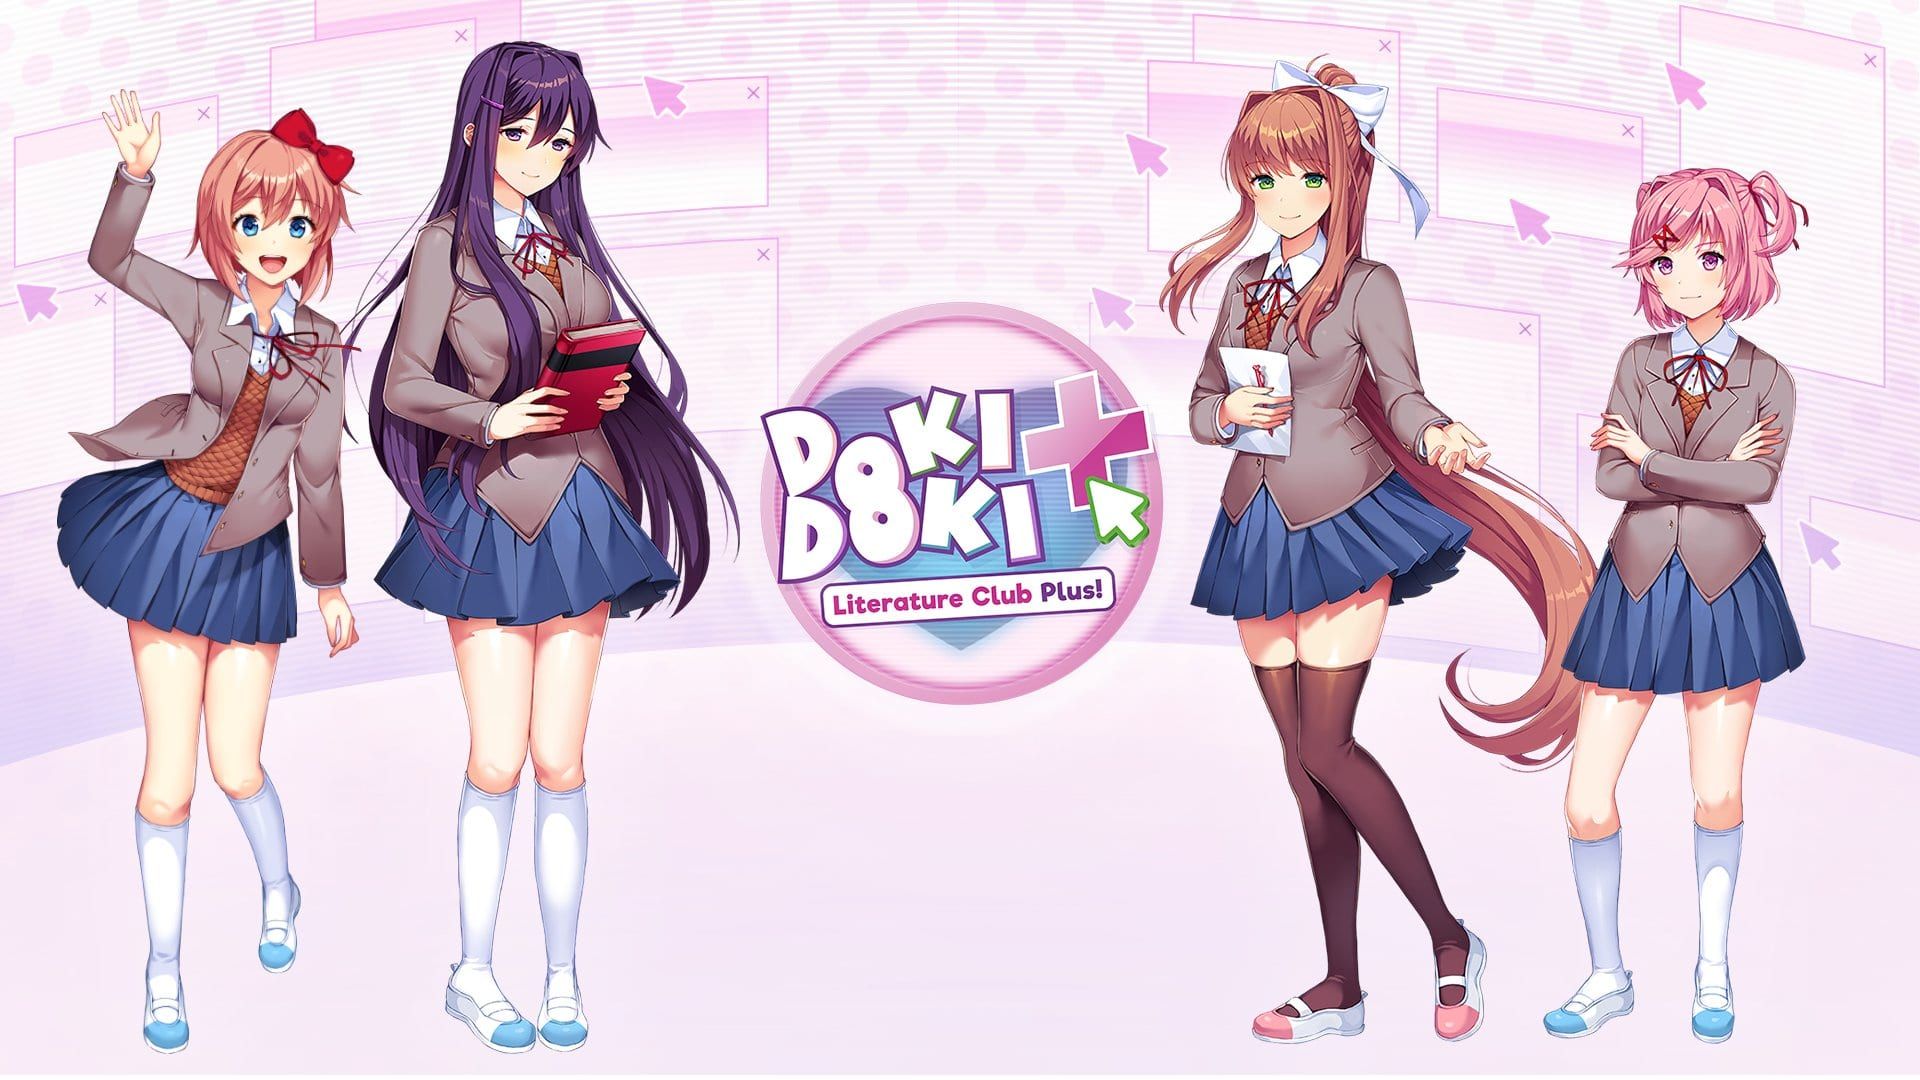 The best words for every girl at Doki Doki Literature Club Plus!